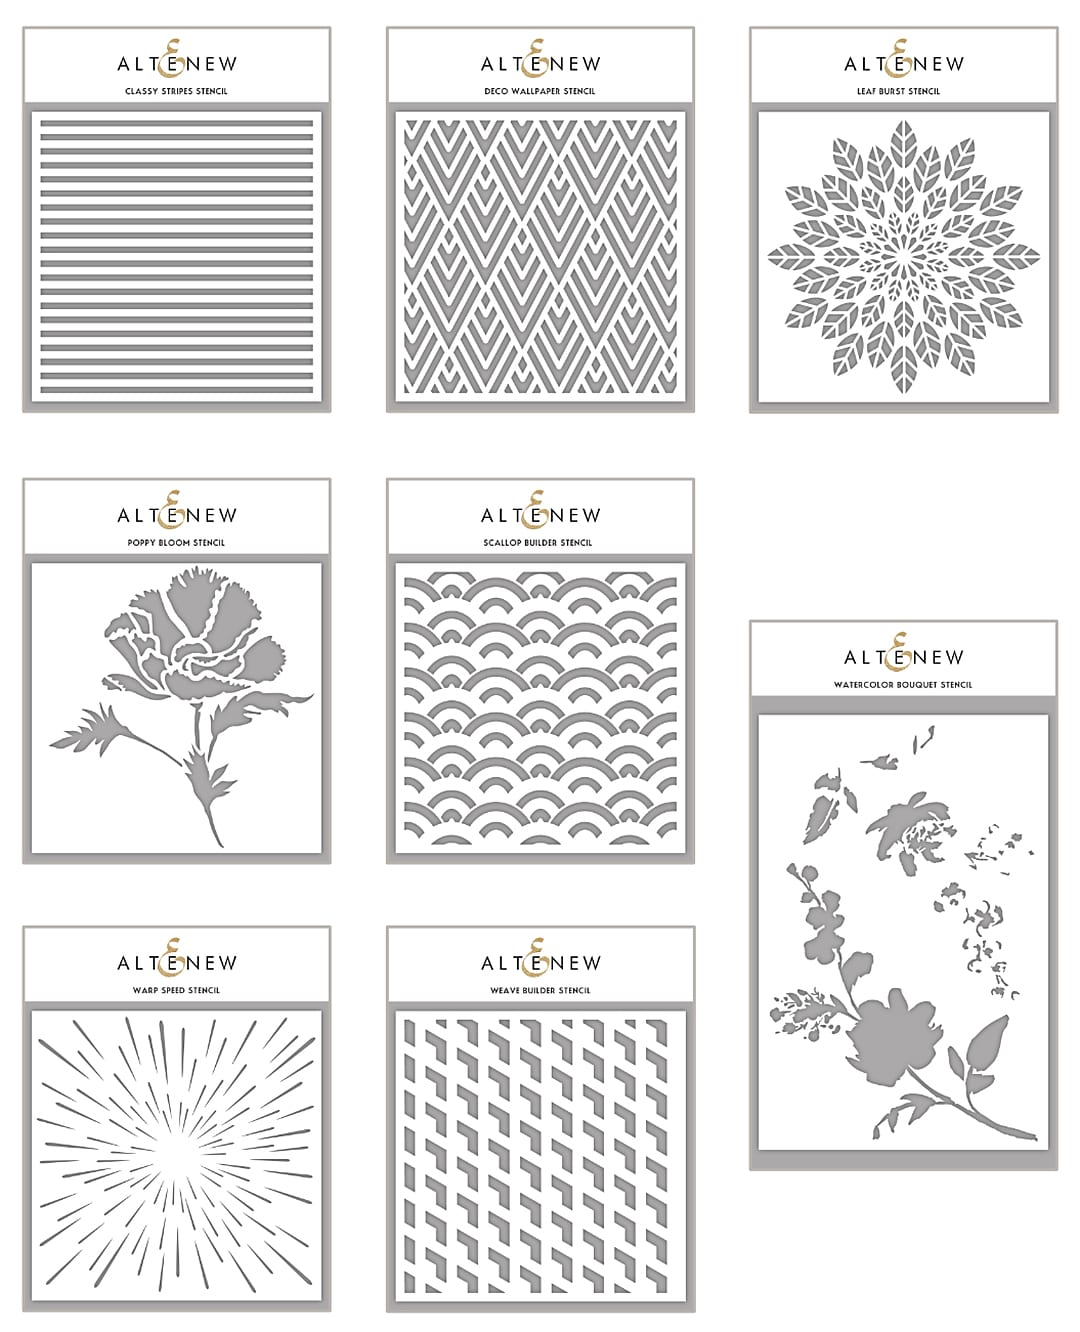 New Altenew Stencils. Find out more here: http://limedoodledesign.com/2018/03/video-altenew-march-2018-release-blog-hop-giveaway/